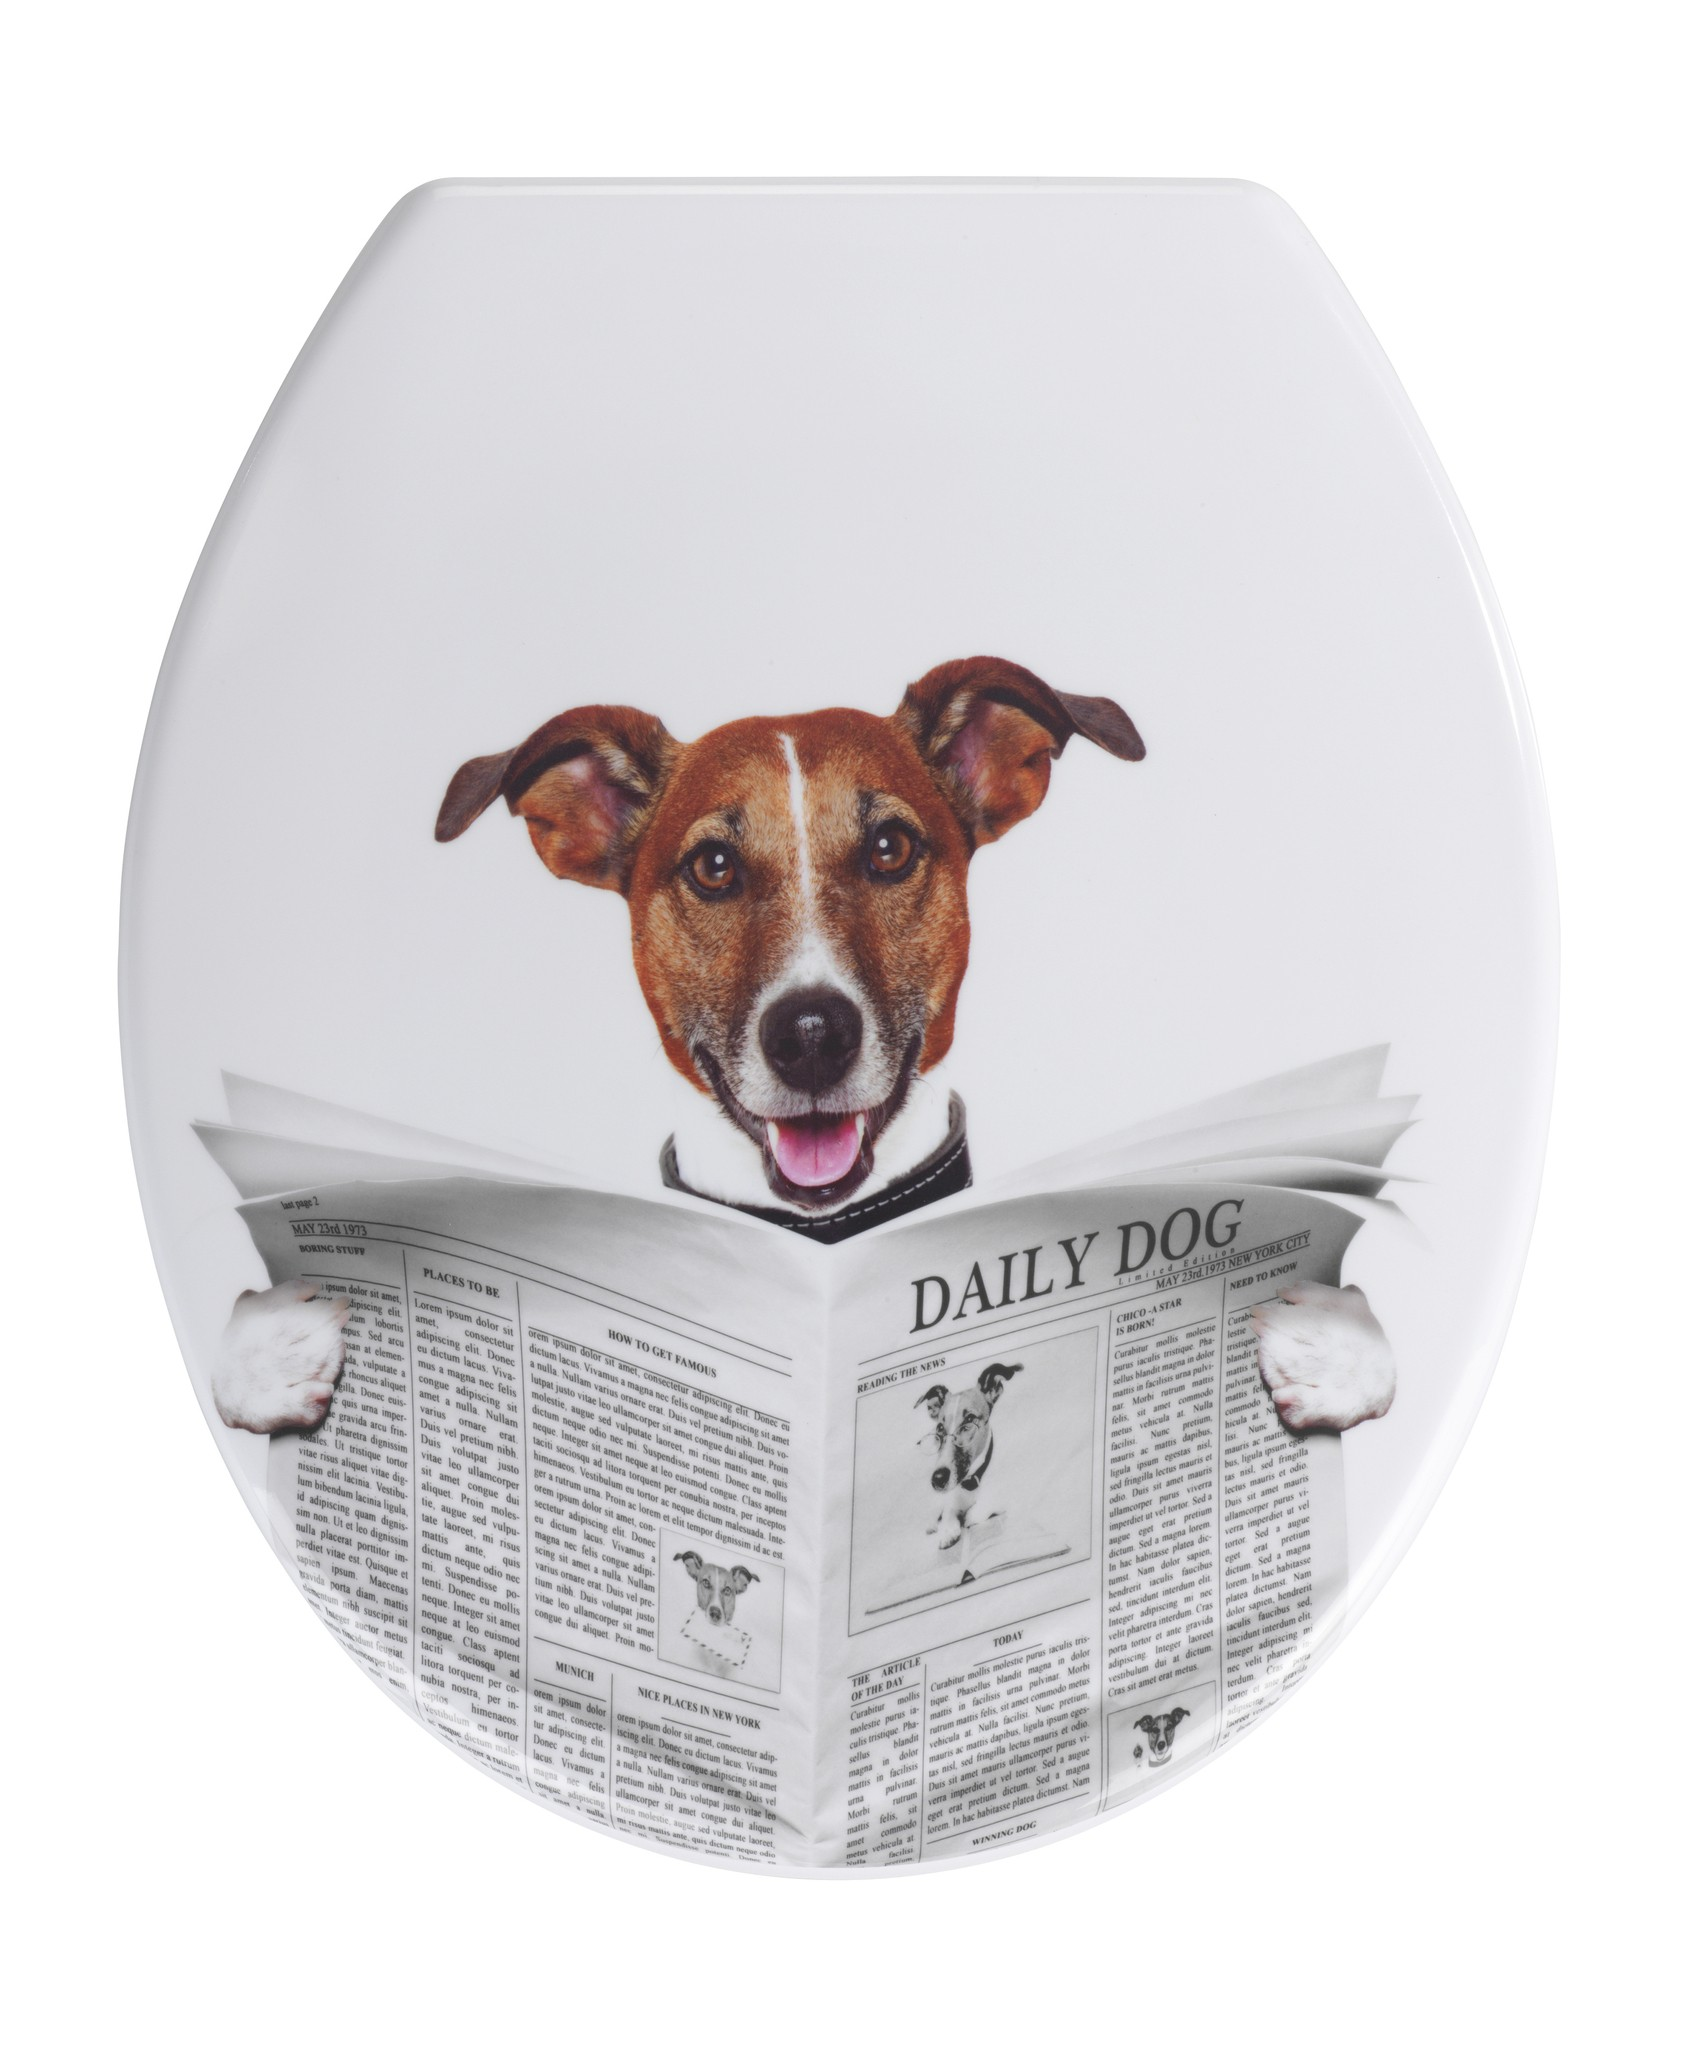 WC-Sitz Daily Dog, Duroplast